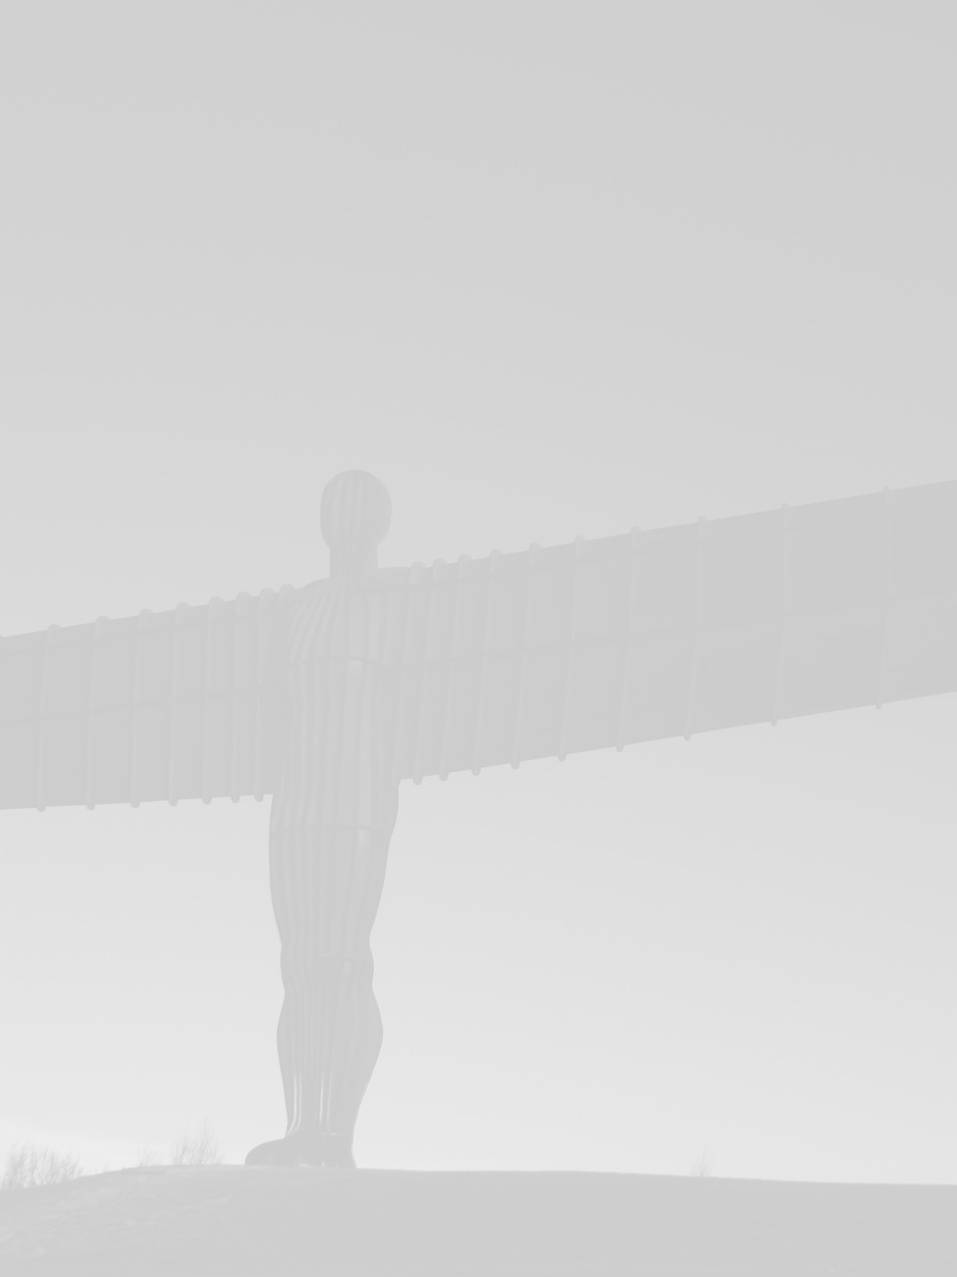 seo newcastle image of the angel of the north